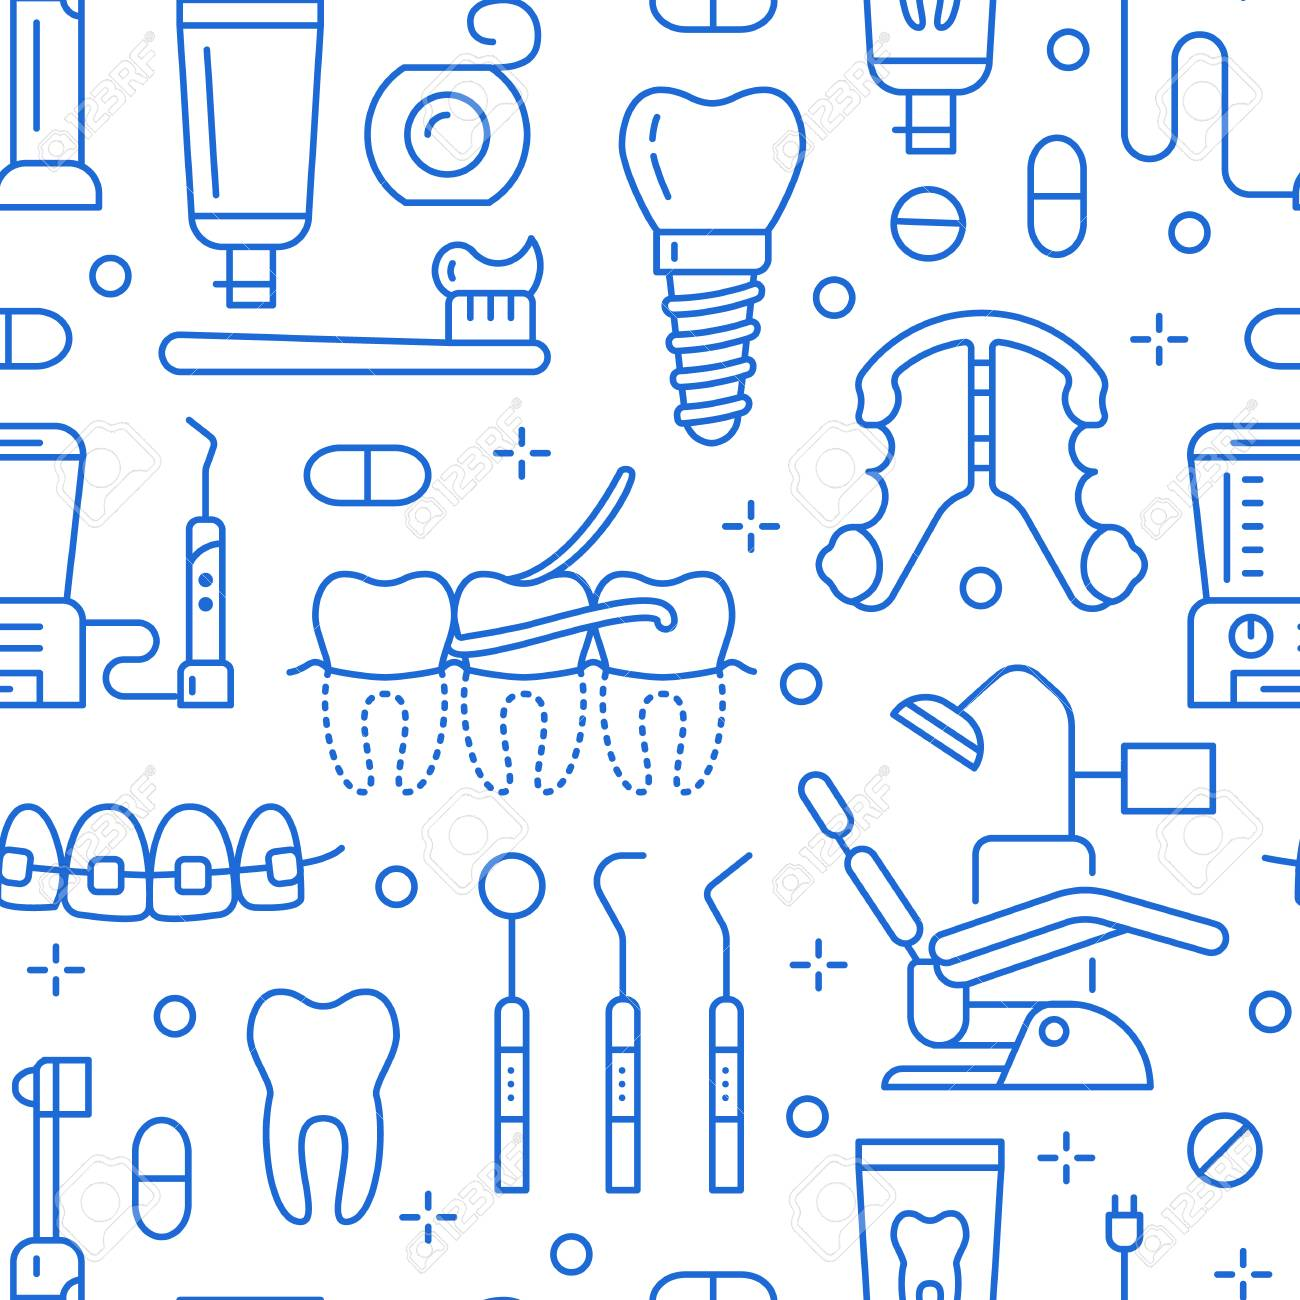 Dentist, orthodontics blue seamless pattern with line icons. Dental care, medical equipment, braces, tooth prosthesis, floss, caries treatment, toothpaste. Health care background for dentistry clinic. - 108590256